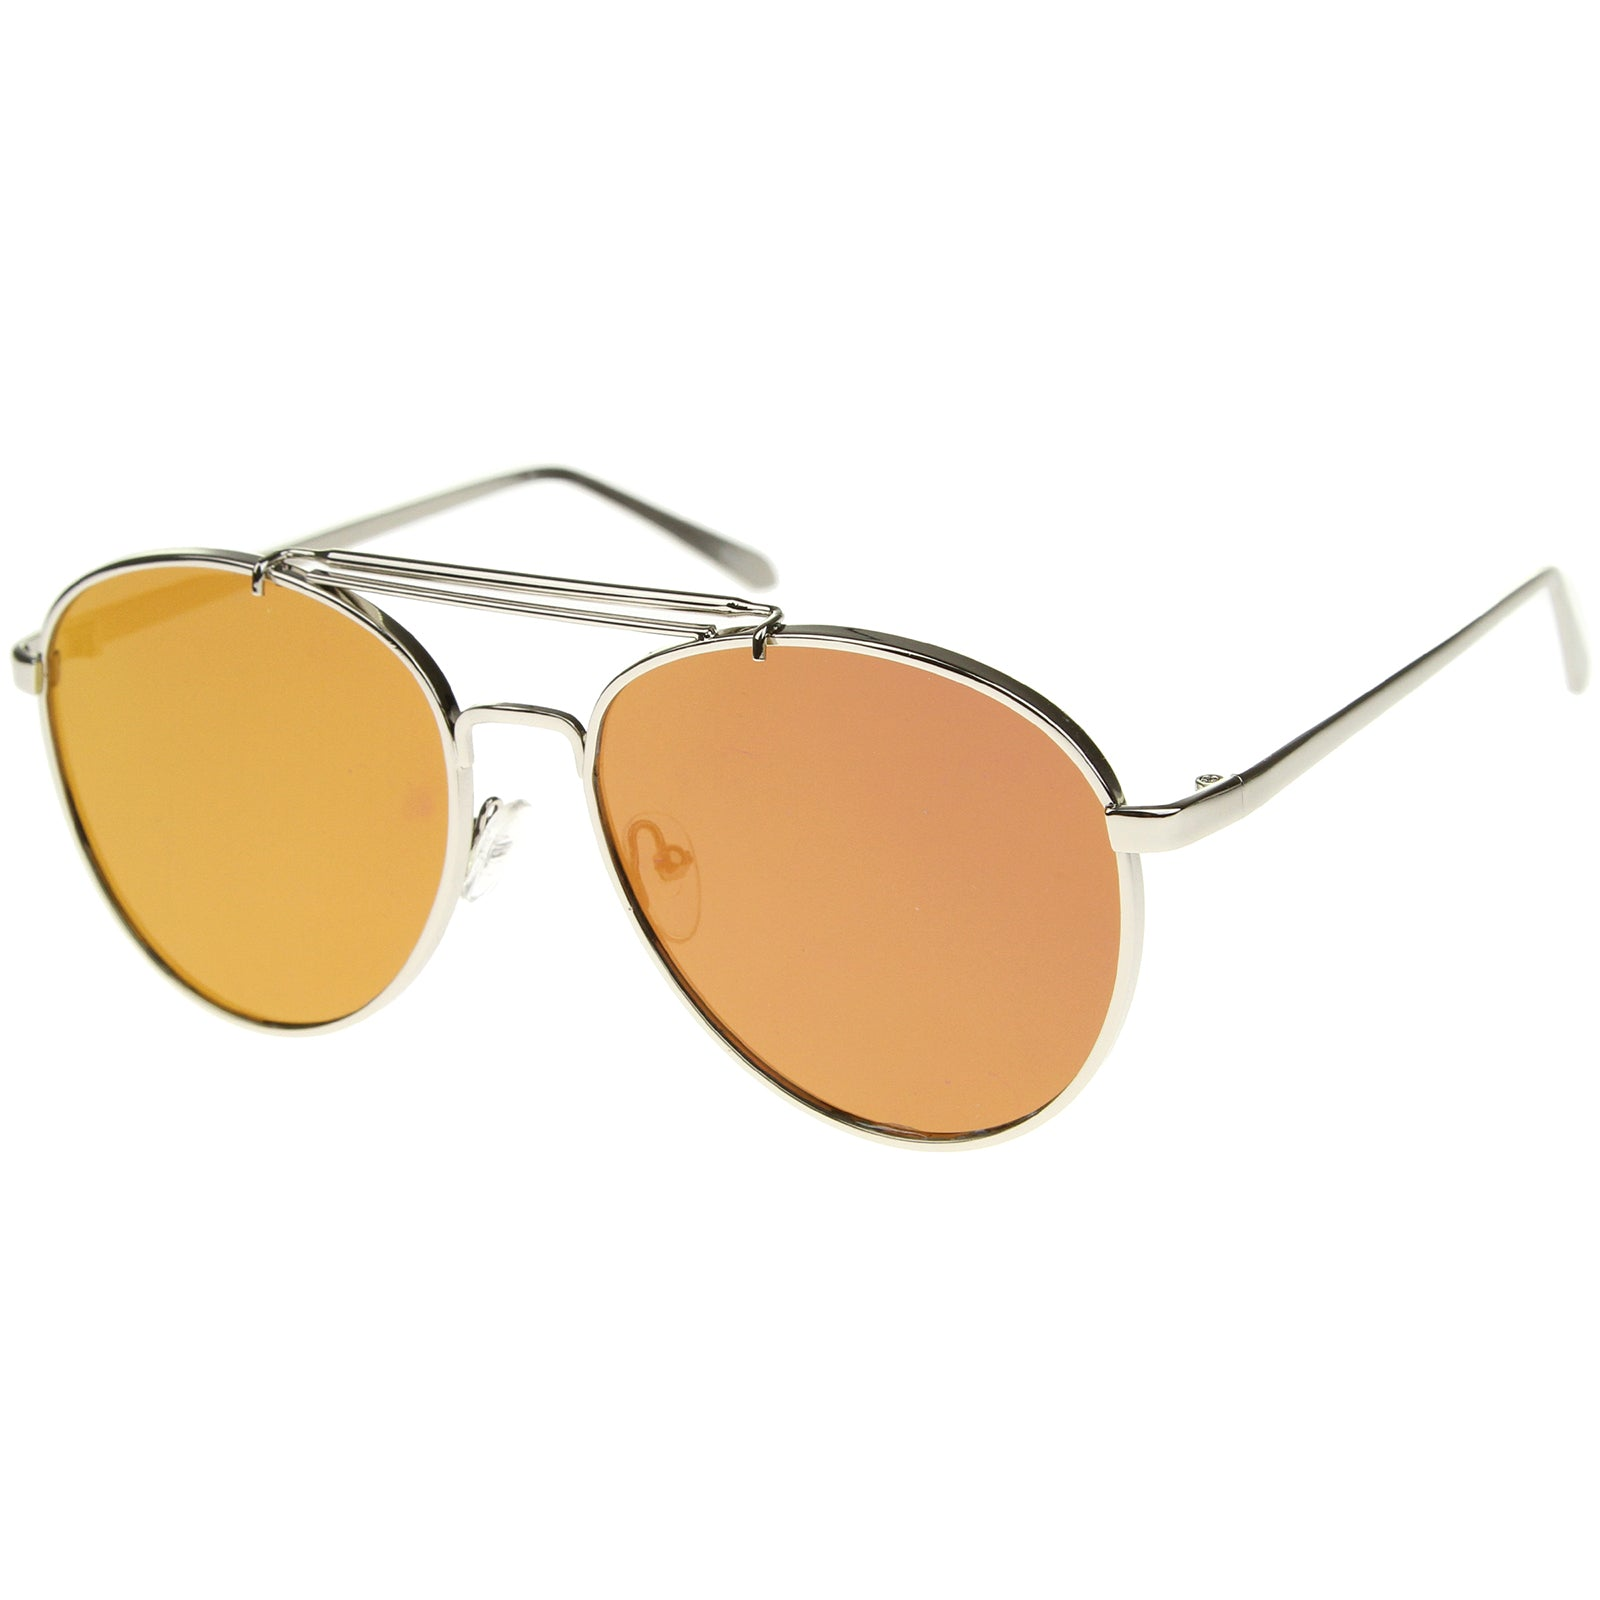 Large Metal Teardrop Double Bridge Mirrored Flat Lens Aviator Sunglasses 60mm - sunglass.la - 2